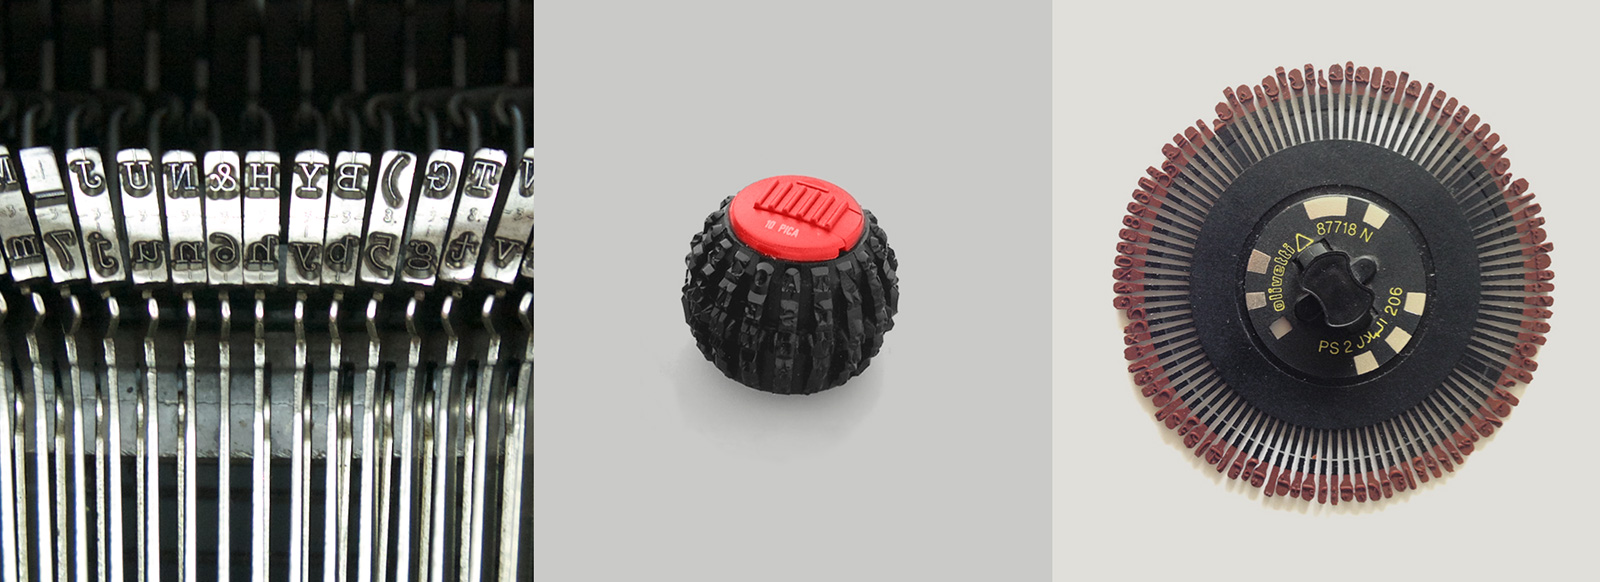 Type bars, golf ball, and daisy wheel for Olivetti typewriters. These were the three mechanisms used for printing type in typewriters. Photos by María Ramos (bars and wheel) and Olivetti (ball).